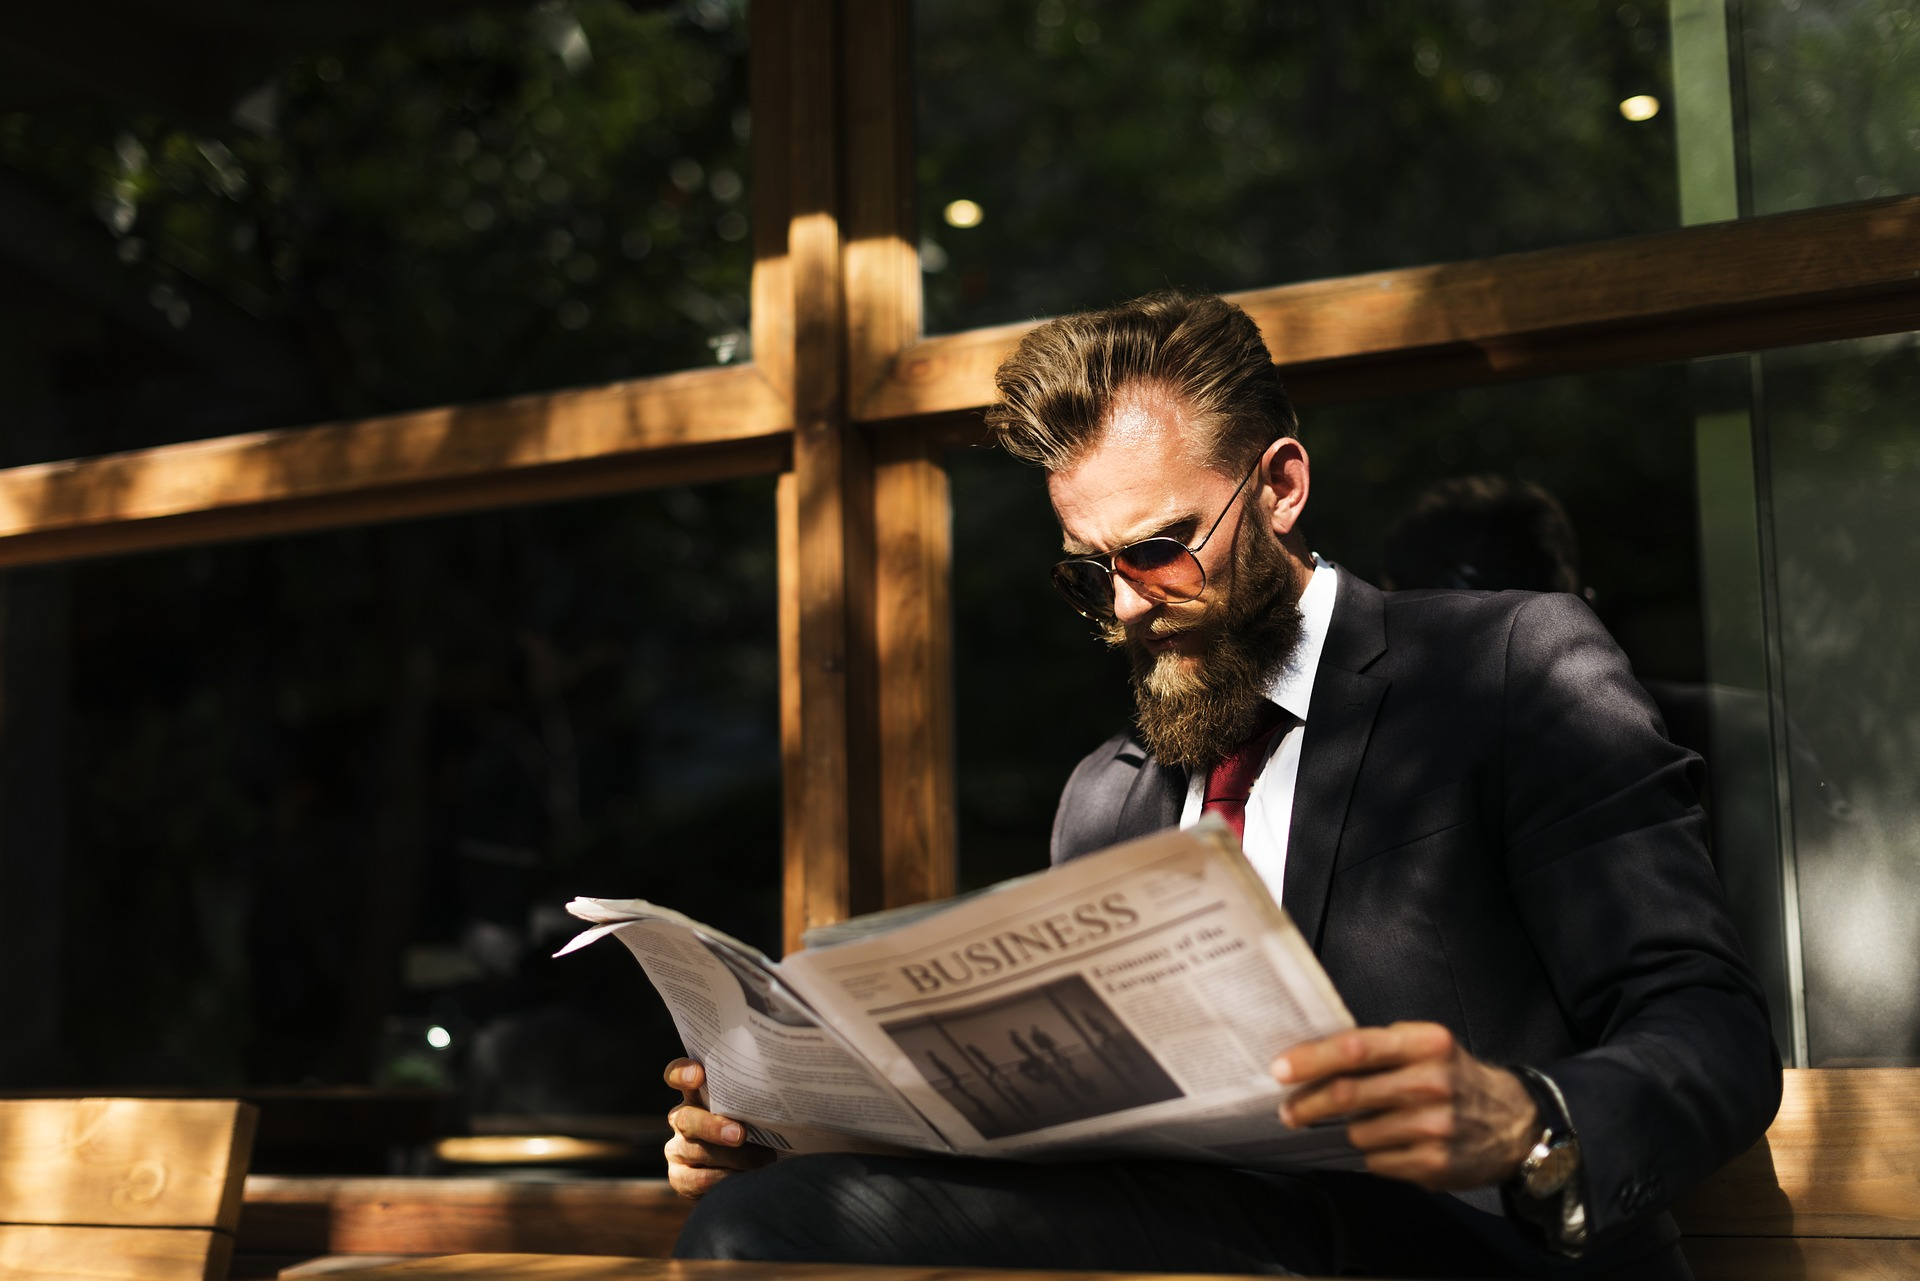 Generation Z Male looking at Newspaper